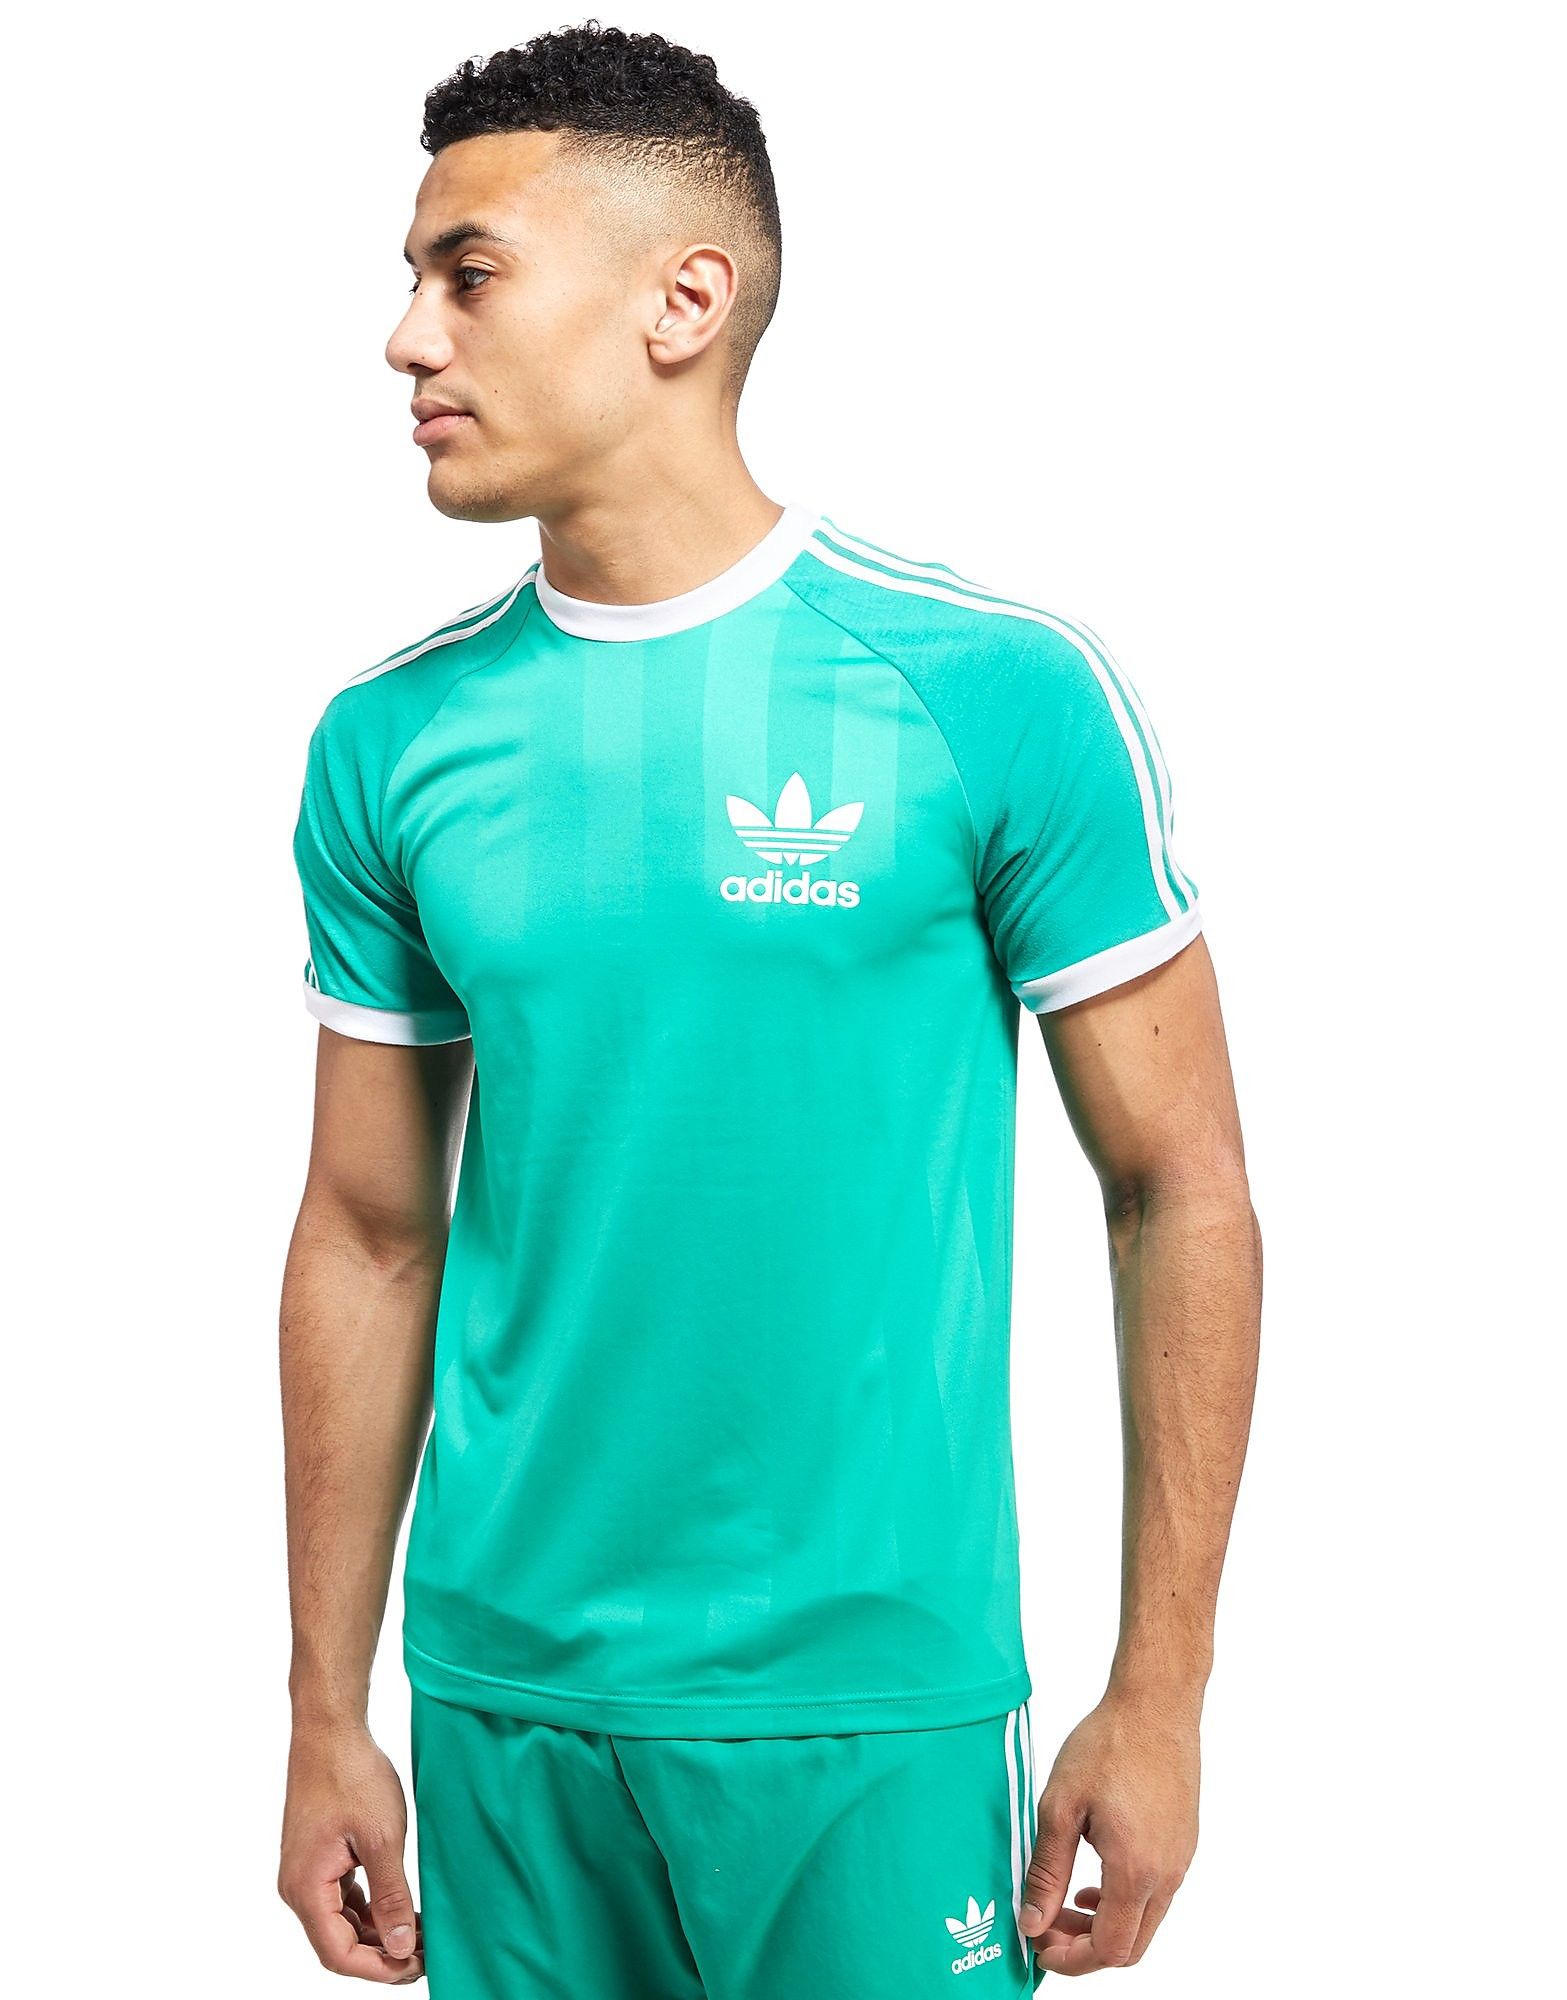 adidas Originals California Trefoil T-Shirt